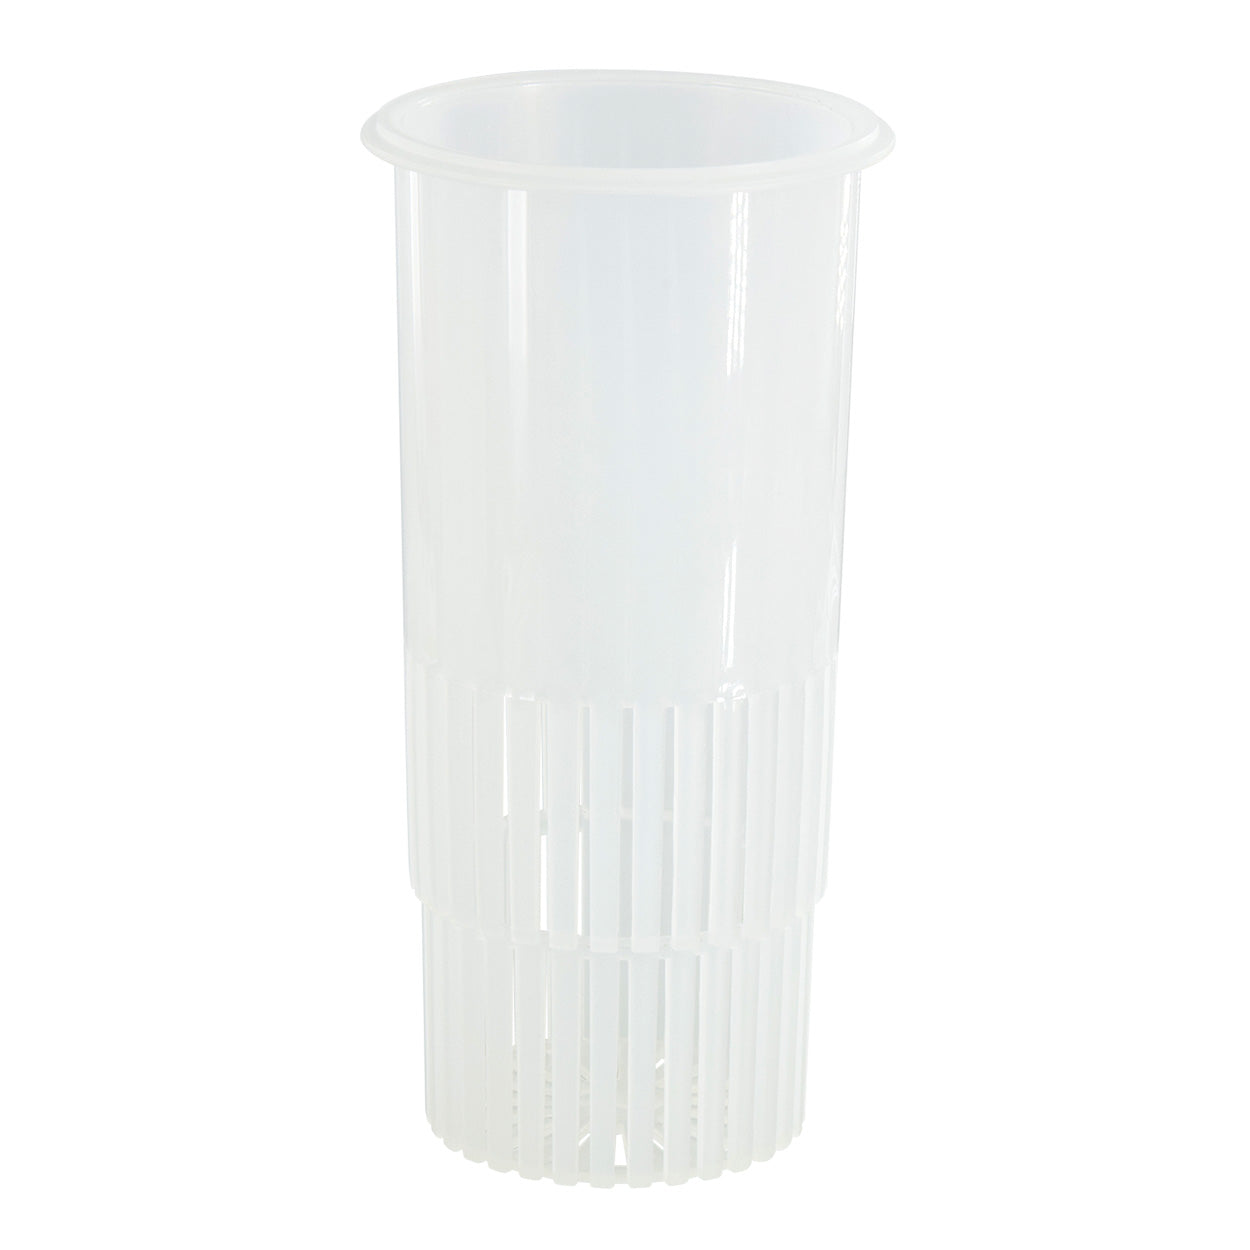 RED SEAFilter Media Cup for REEFER Aquarium Systems - 8 oz